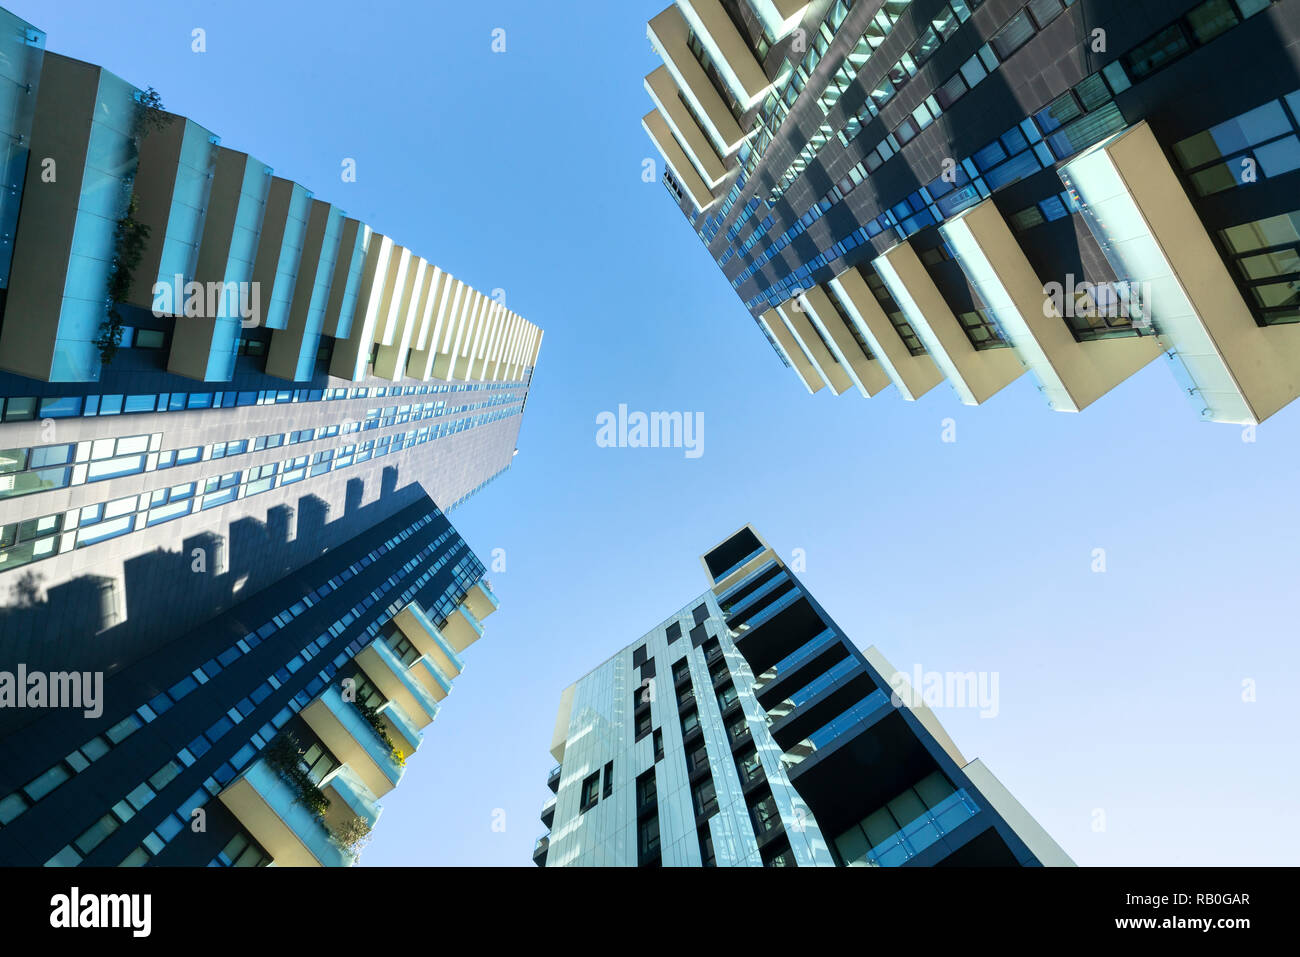 bottom view of skyscrapers in the Isola district in Milan, Italy Stock Photo